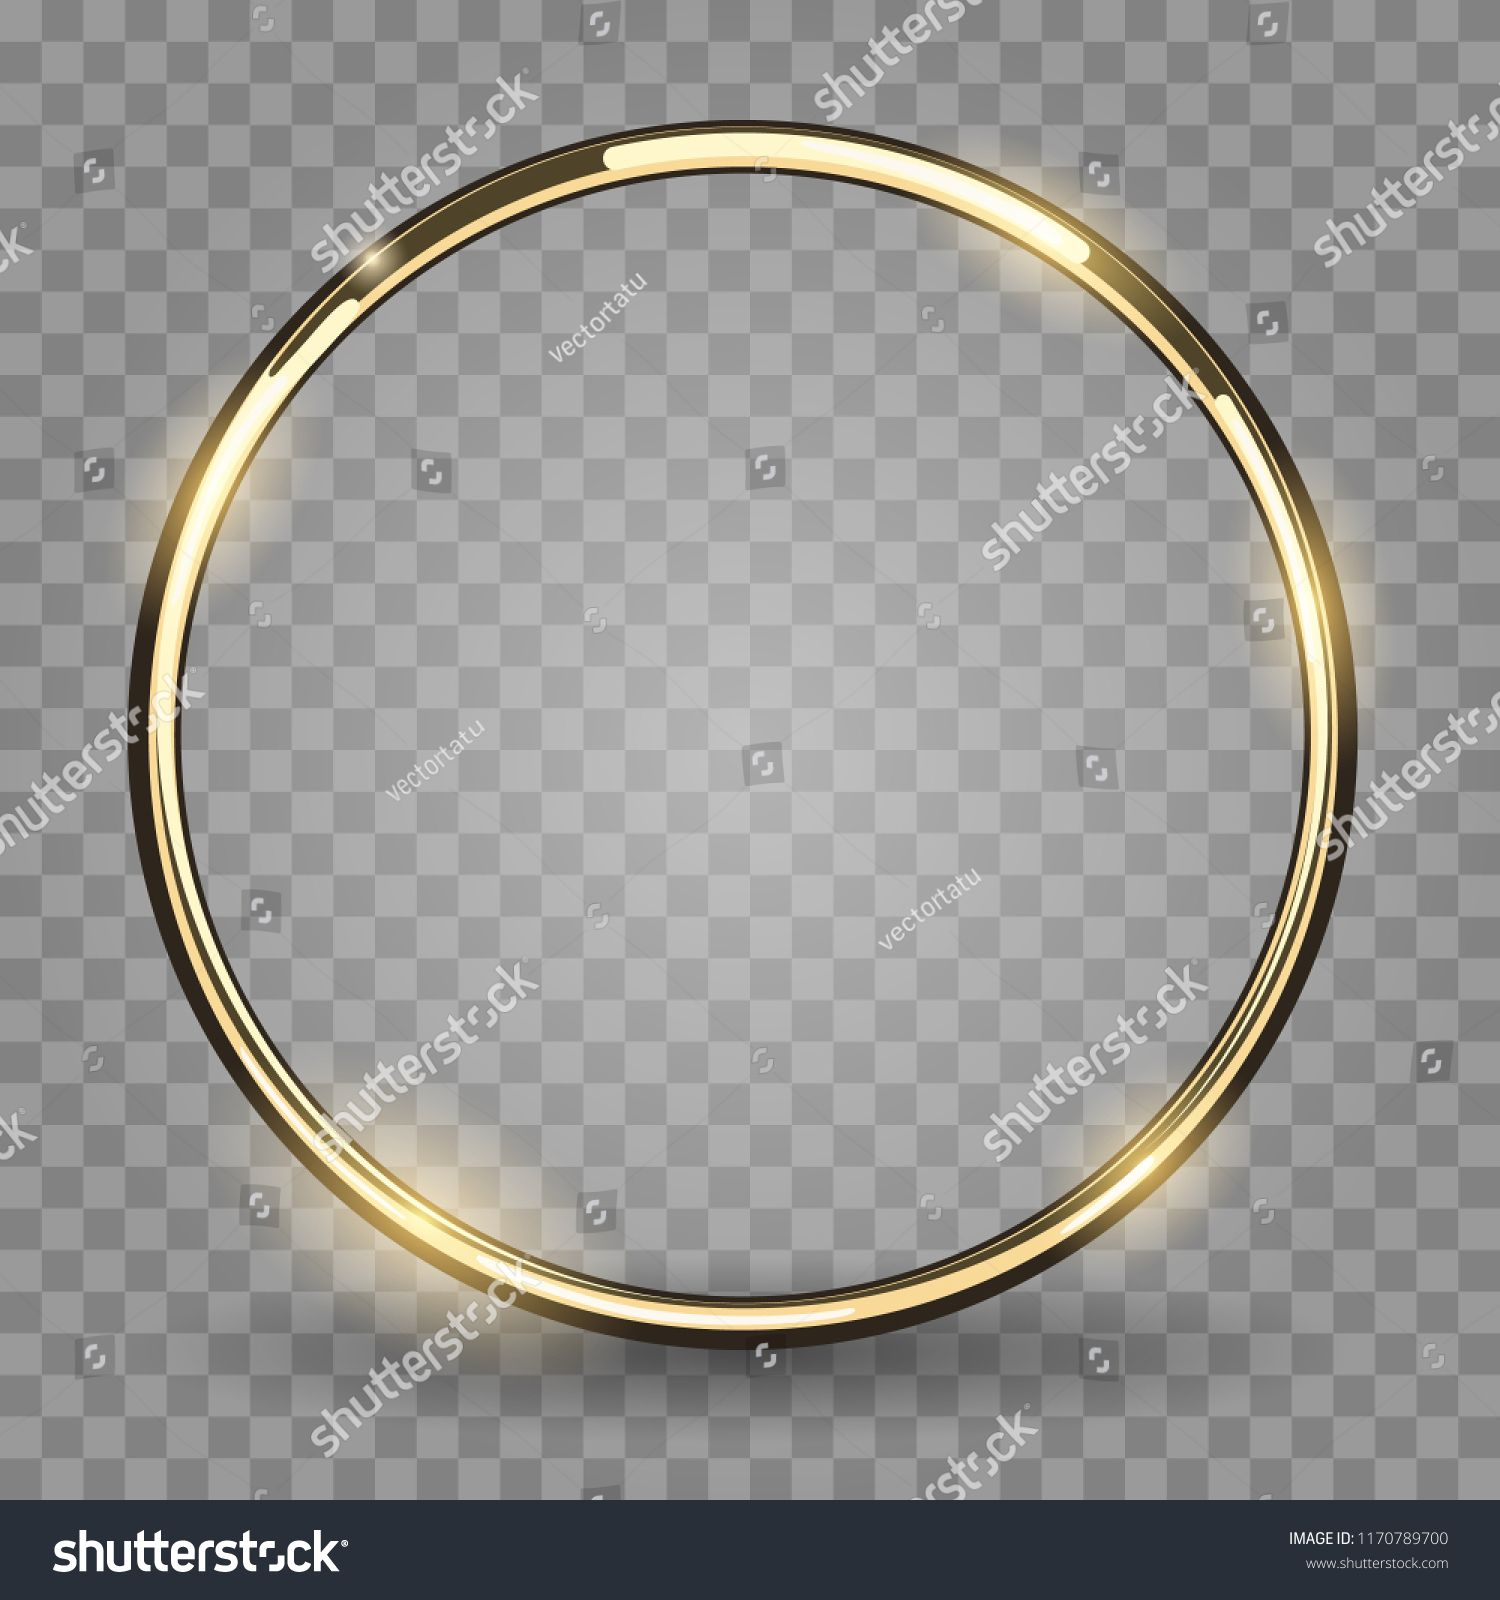 Gold Ring Golden Metal Circle Shiny Metallica Rounded Frame Isolated On Transparent Background Transparent Background Gold Wallpaper Background Ring Vector